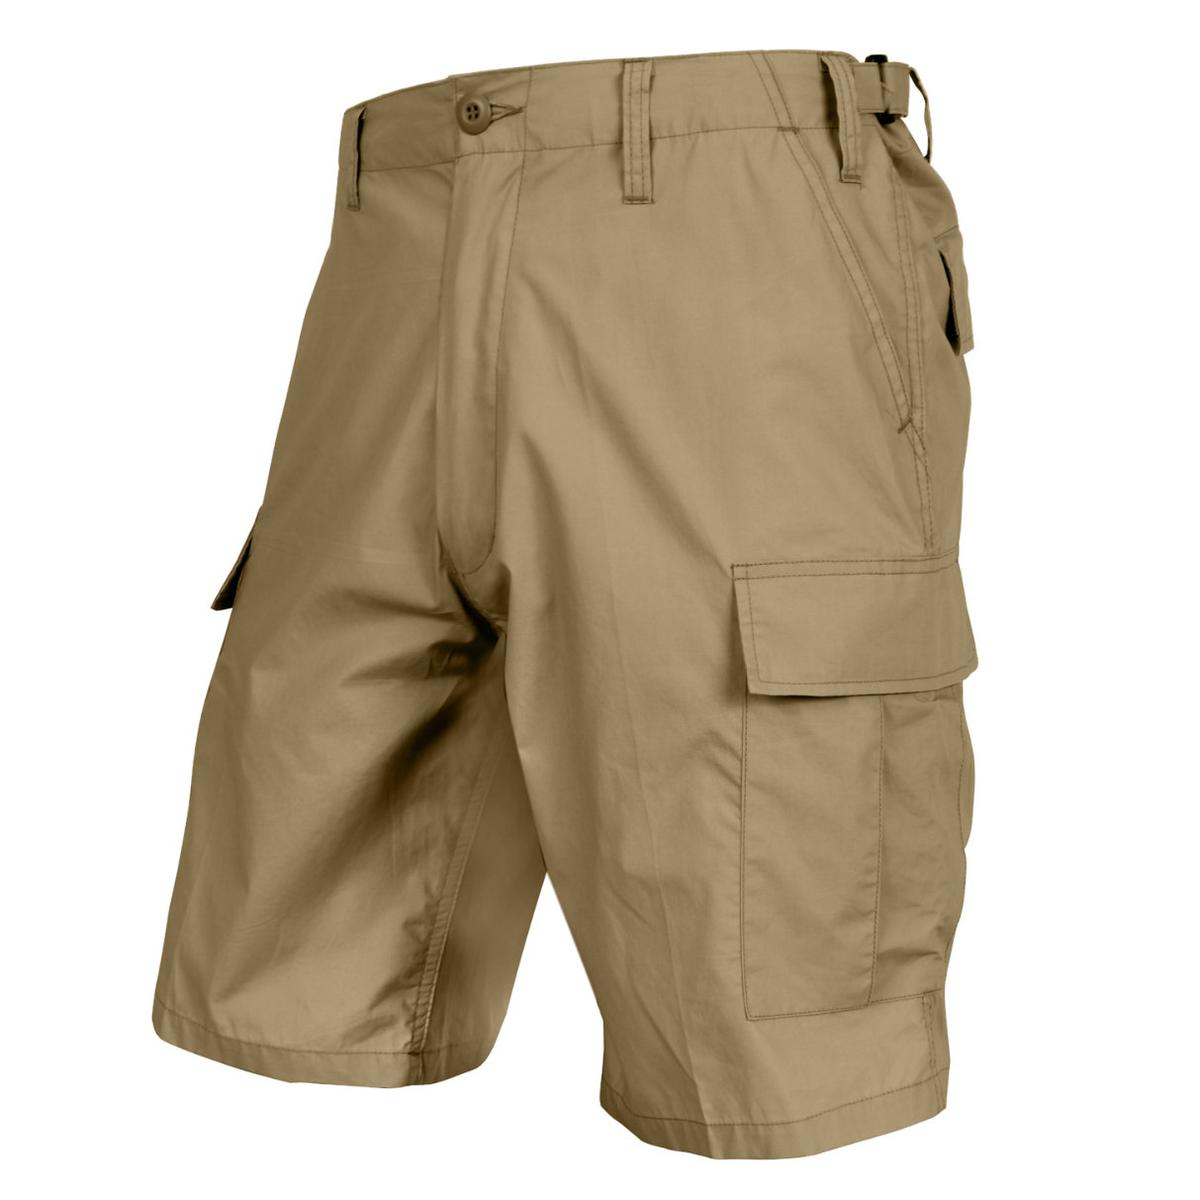 Details about Rothco Lightweight Tactical BDU Cargo Shorts 19b0d545d33